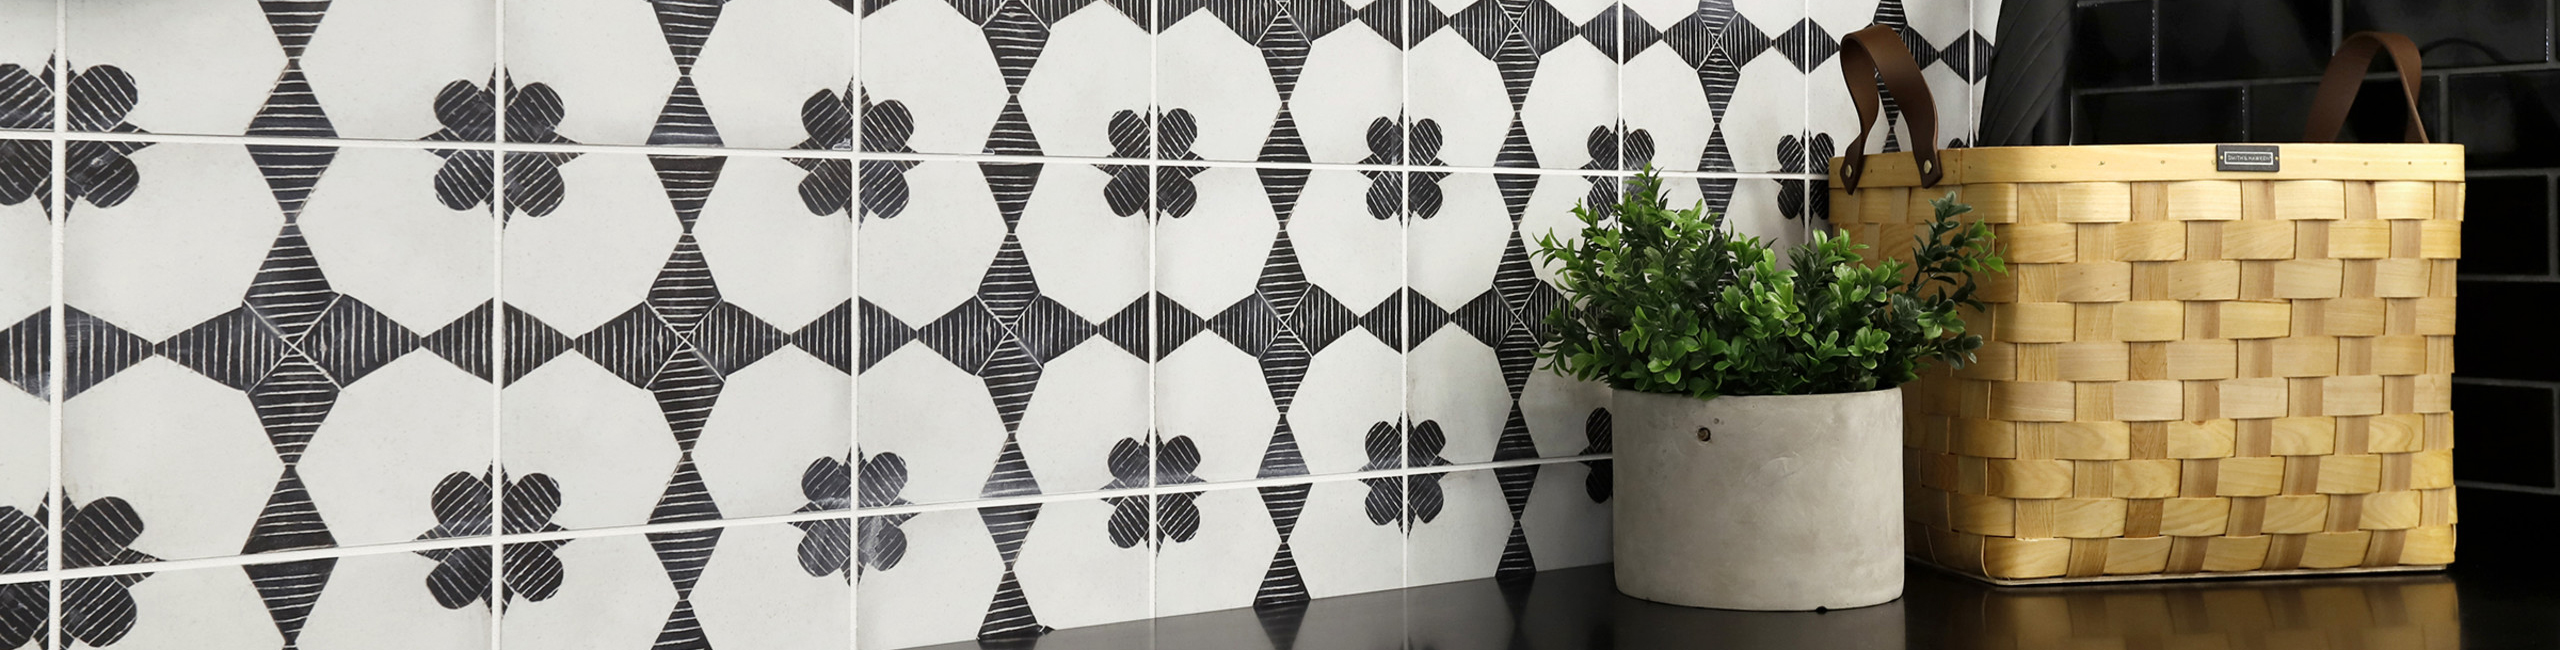 Designing with Black and White Tile and Stone - Enchante Moderno porcelain tile